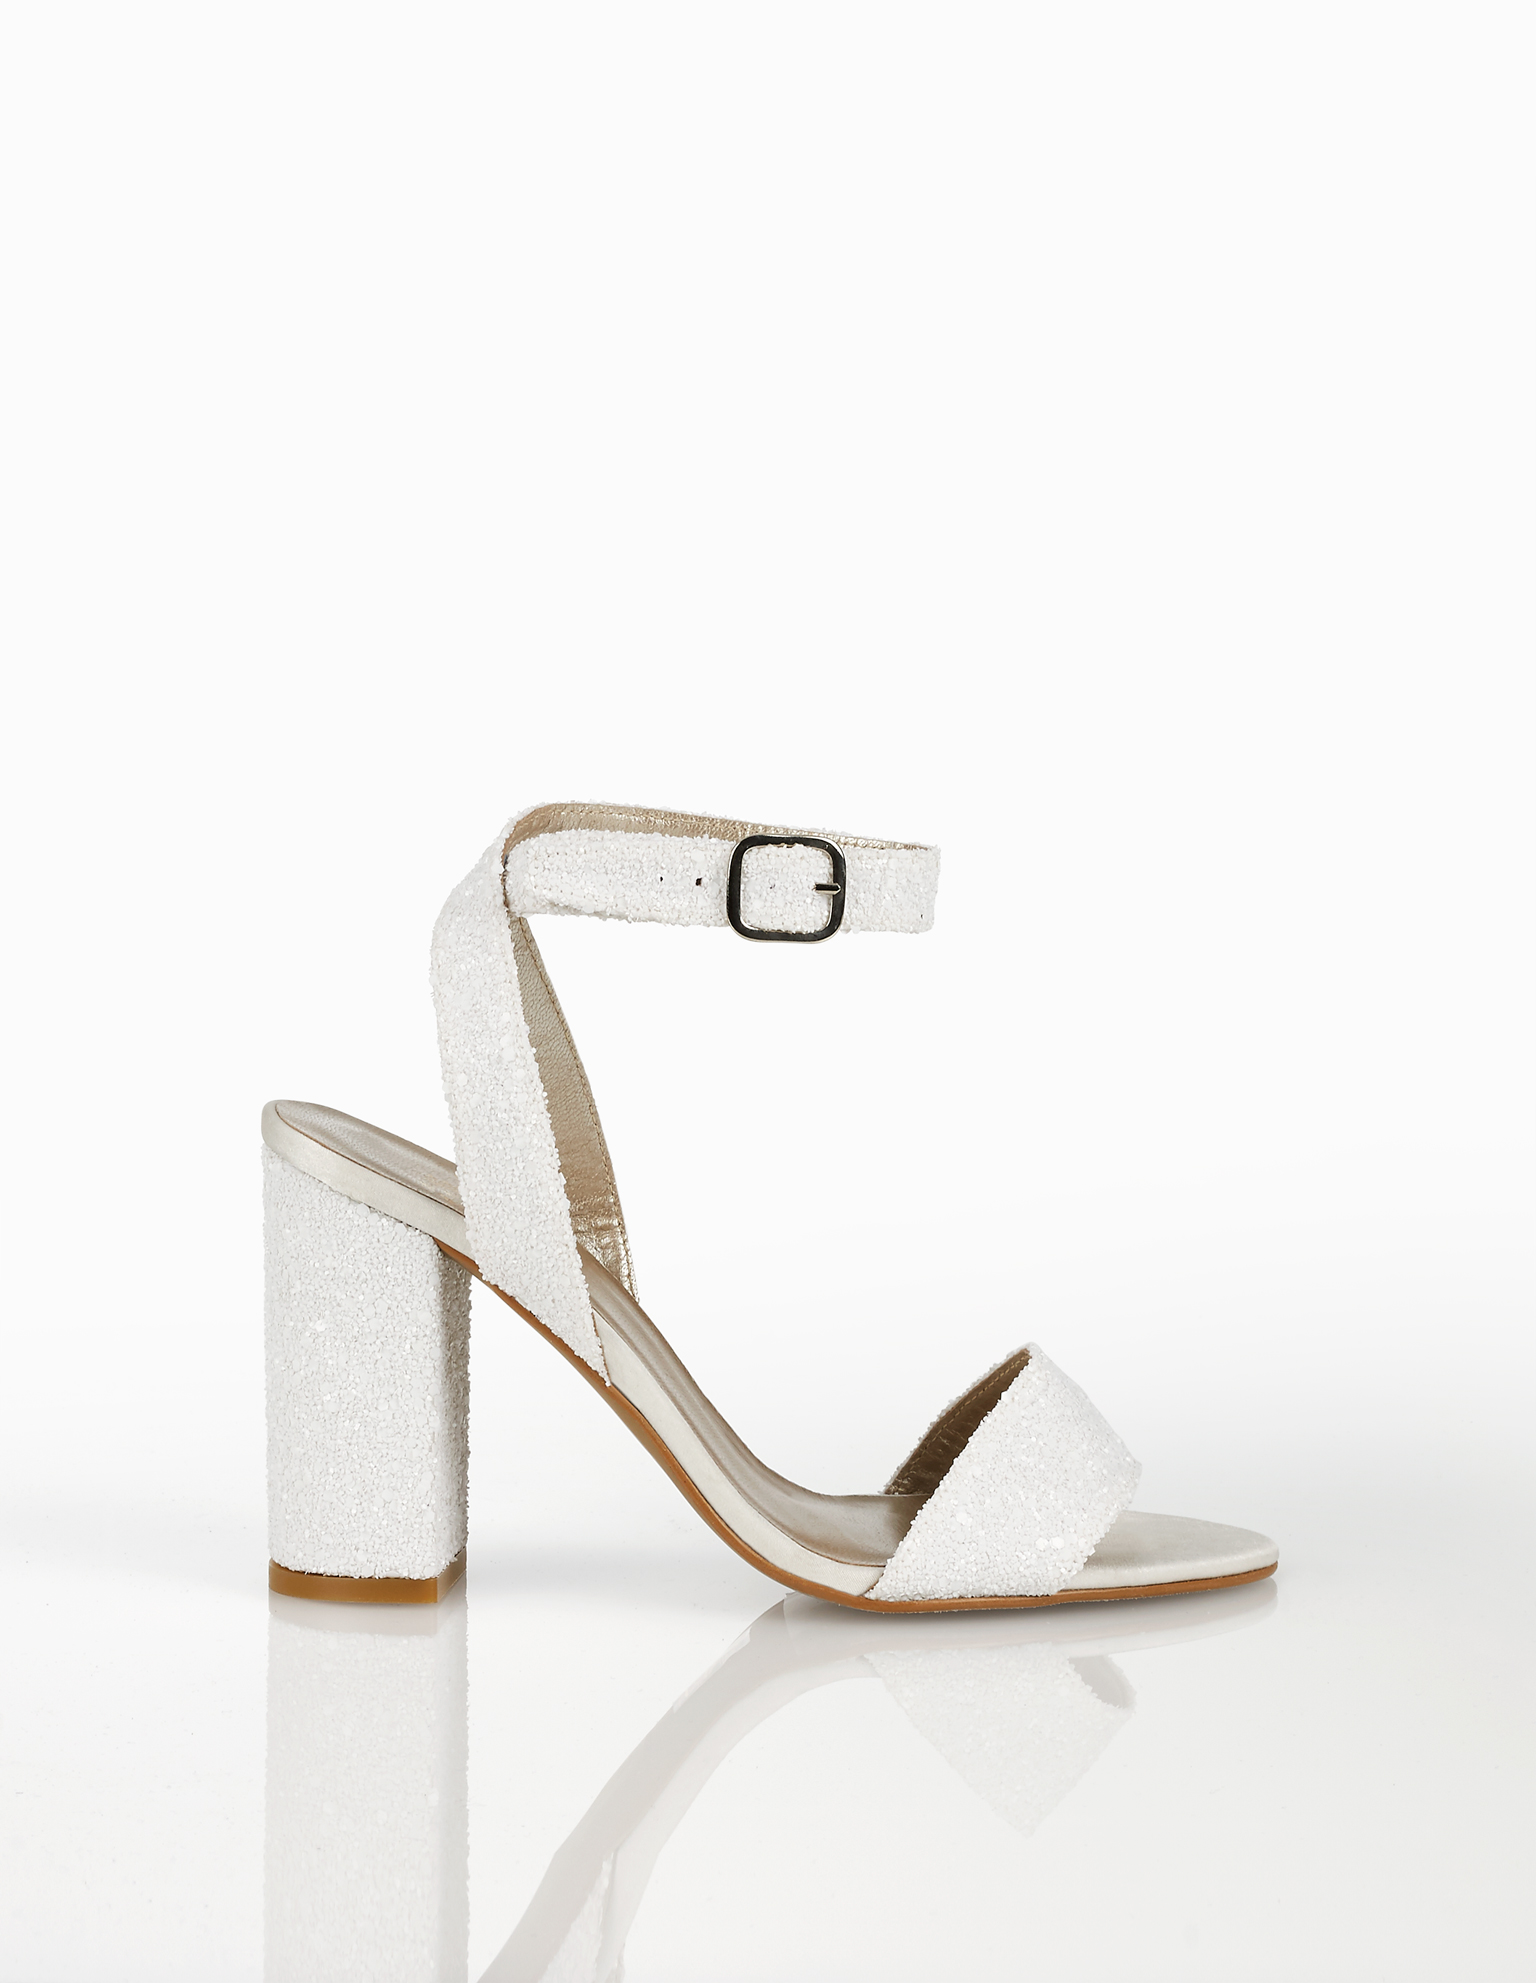 Glitter bridal sandals with mid heel, available in white and silver. 2018 AIRE BARCELONA Collection.